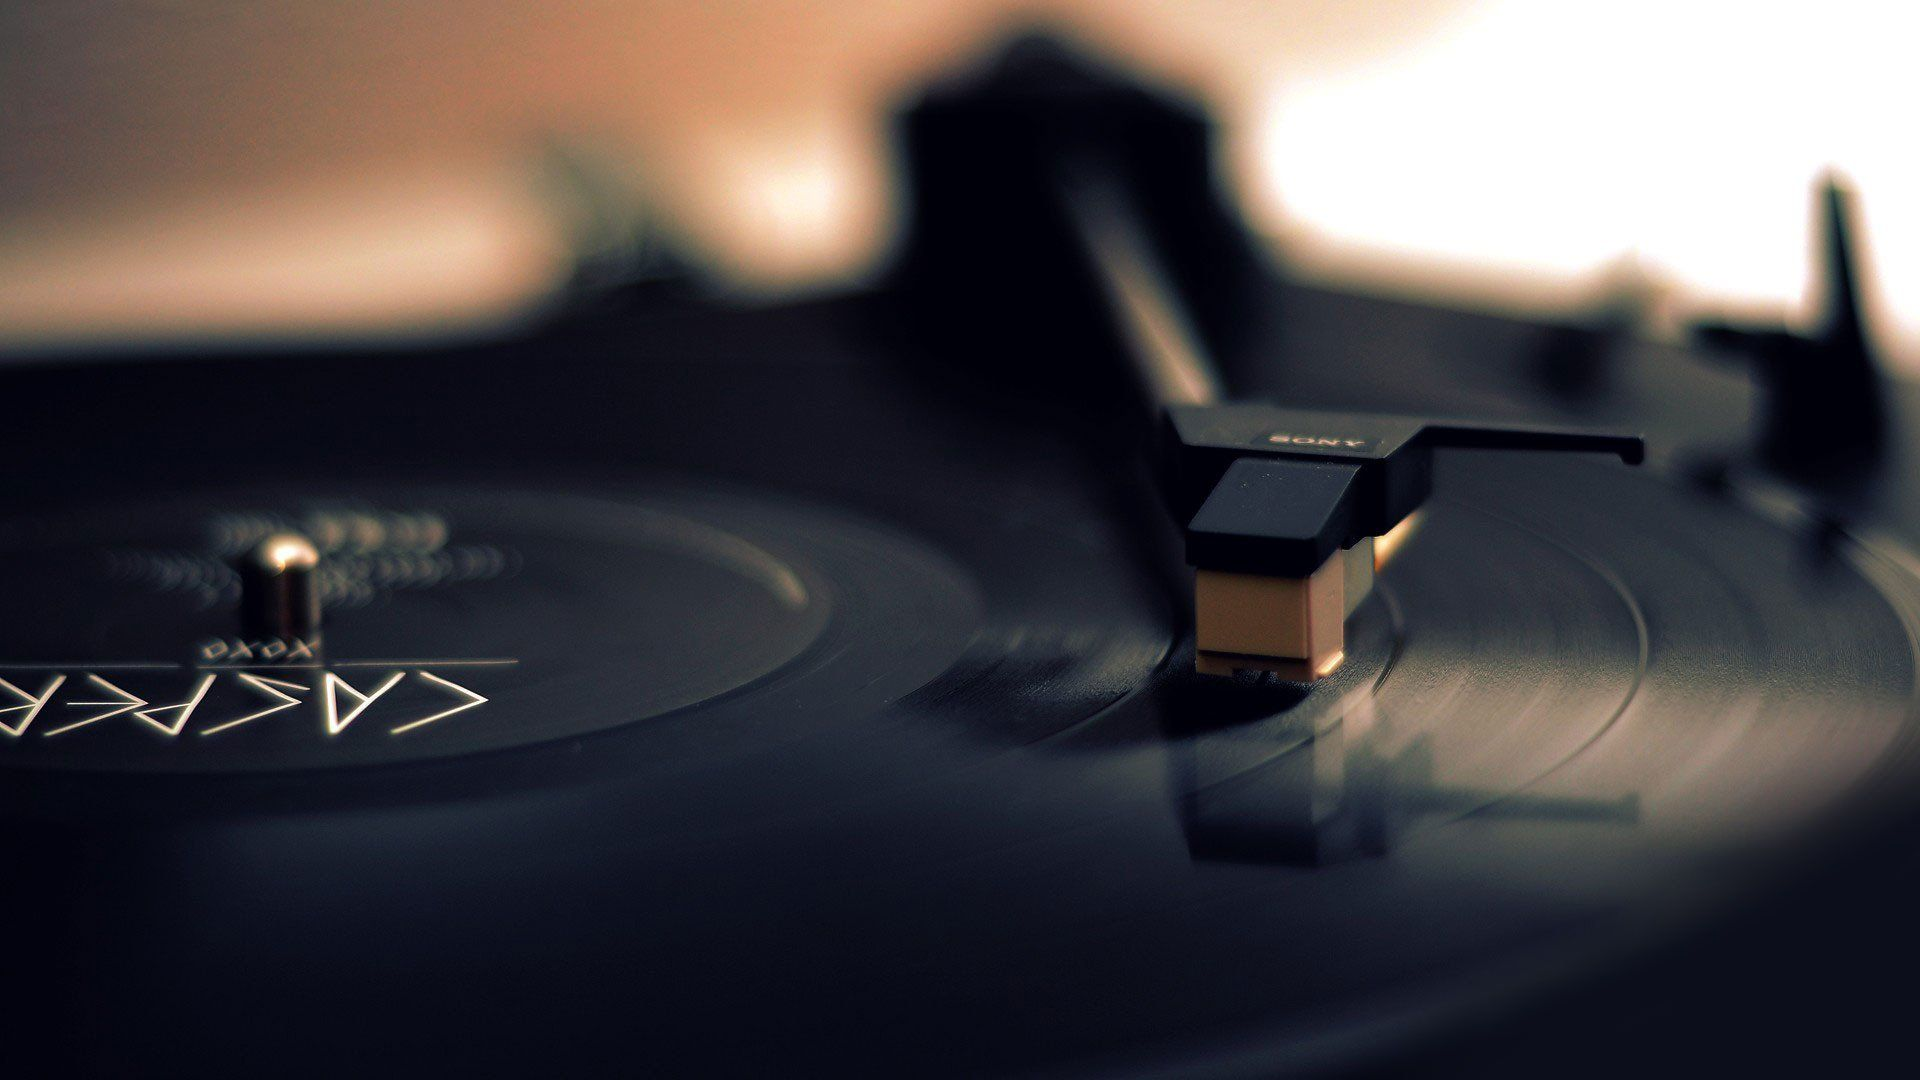 Turntable Wallpapers Hd Desktop Backgrounds Images And